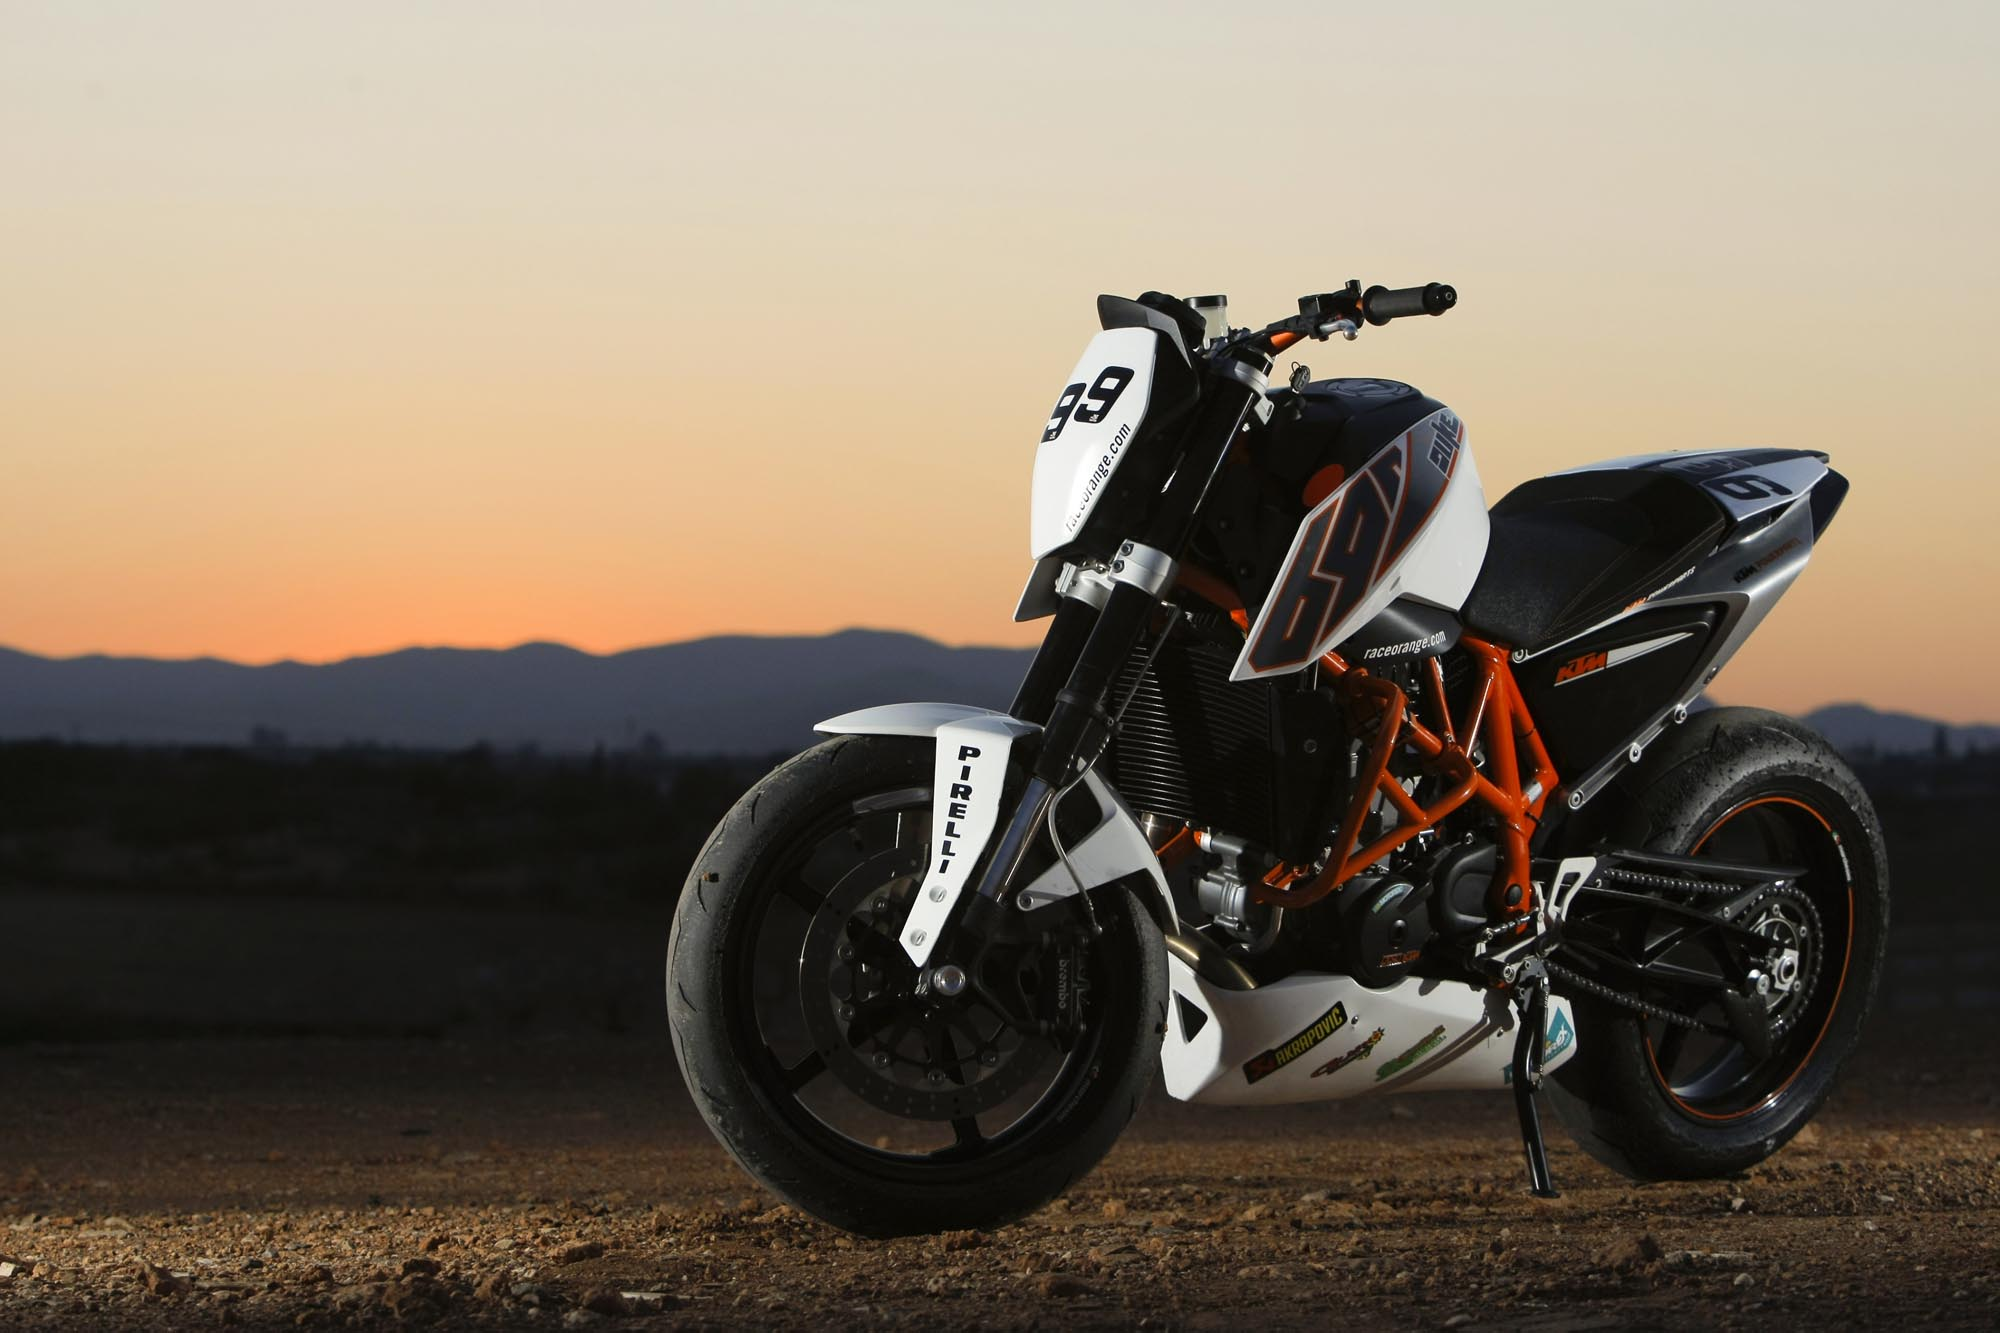 ktm 690 duke track asphalt rubber. Black Bedroom Furniture Sets. Home Design Ideas